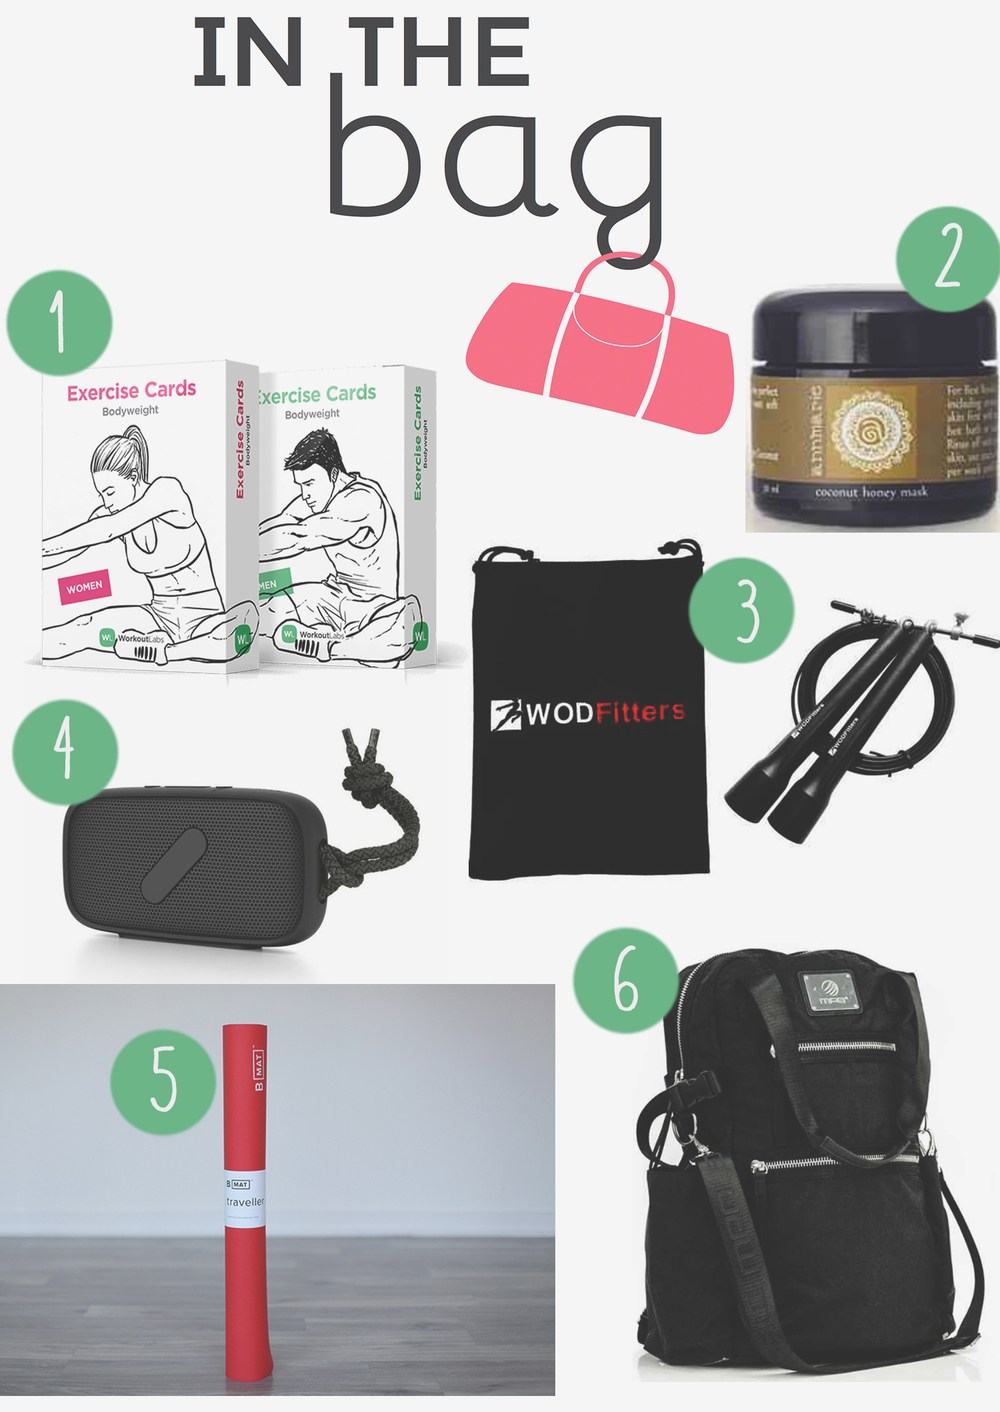 Pin in and win it!  Gear for a great workout on the road